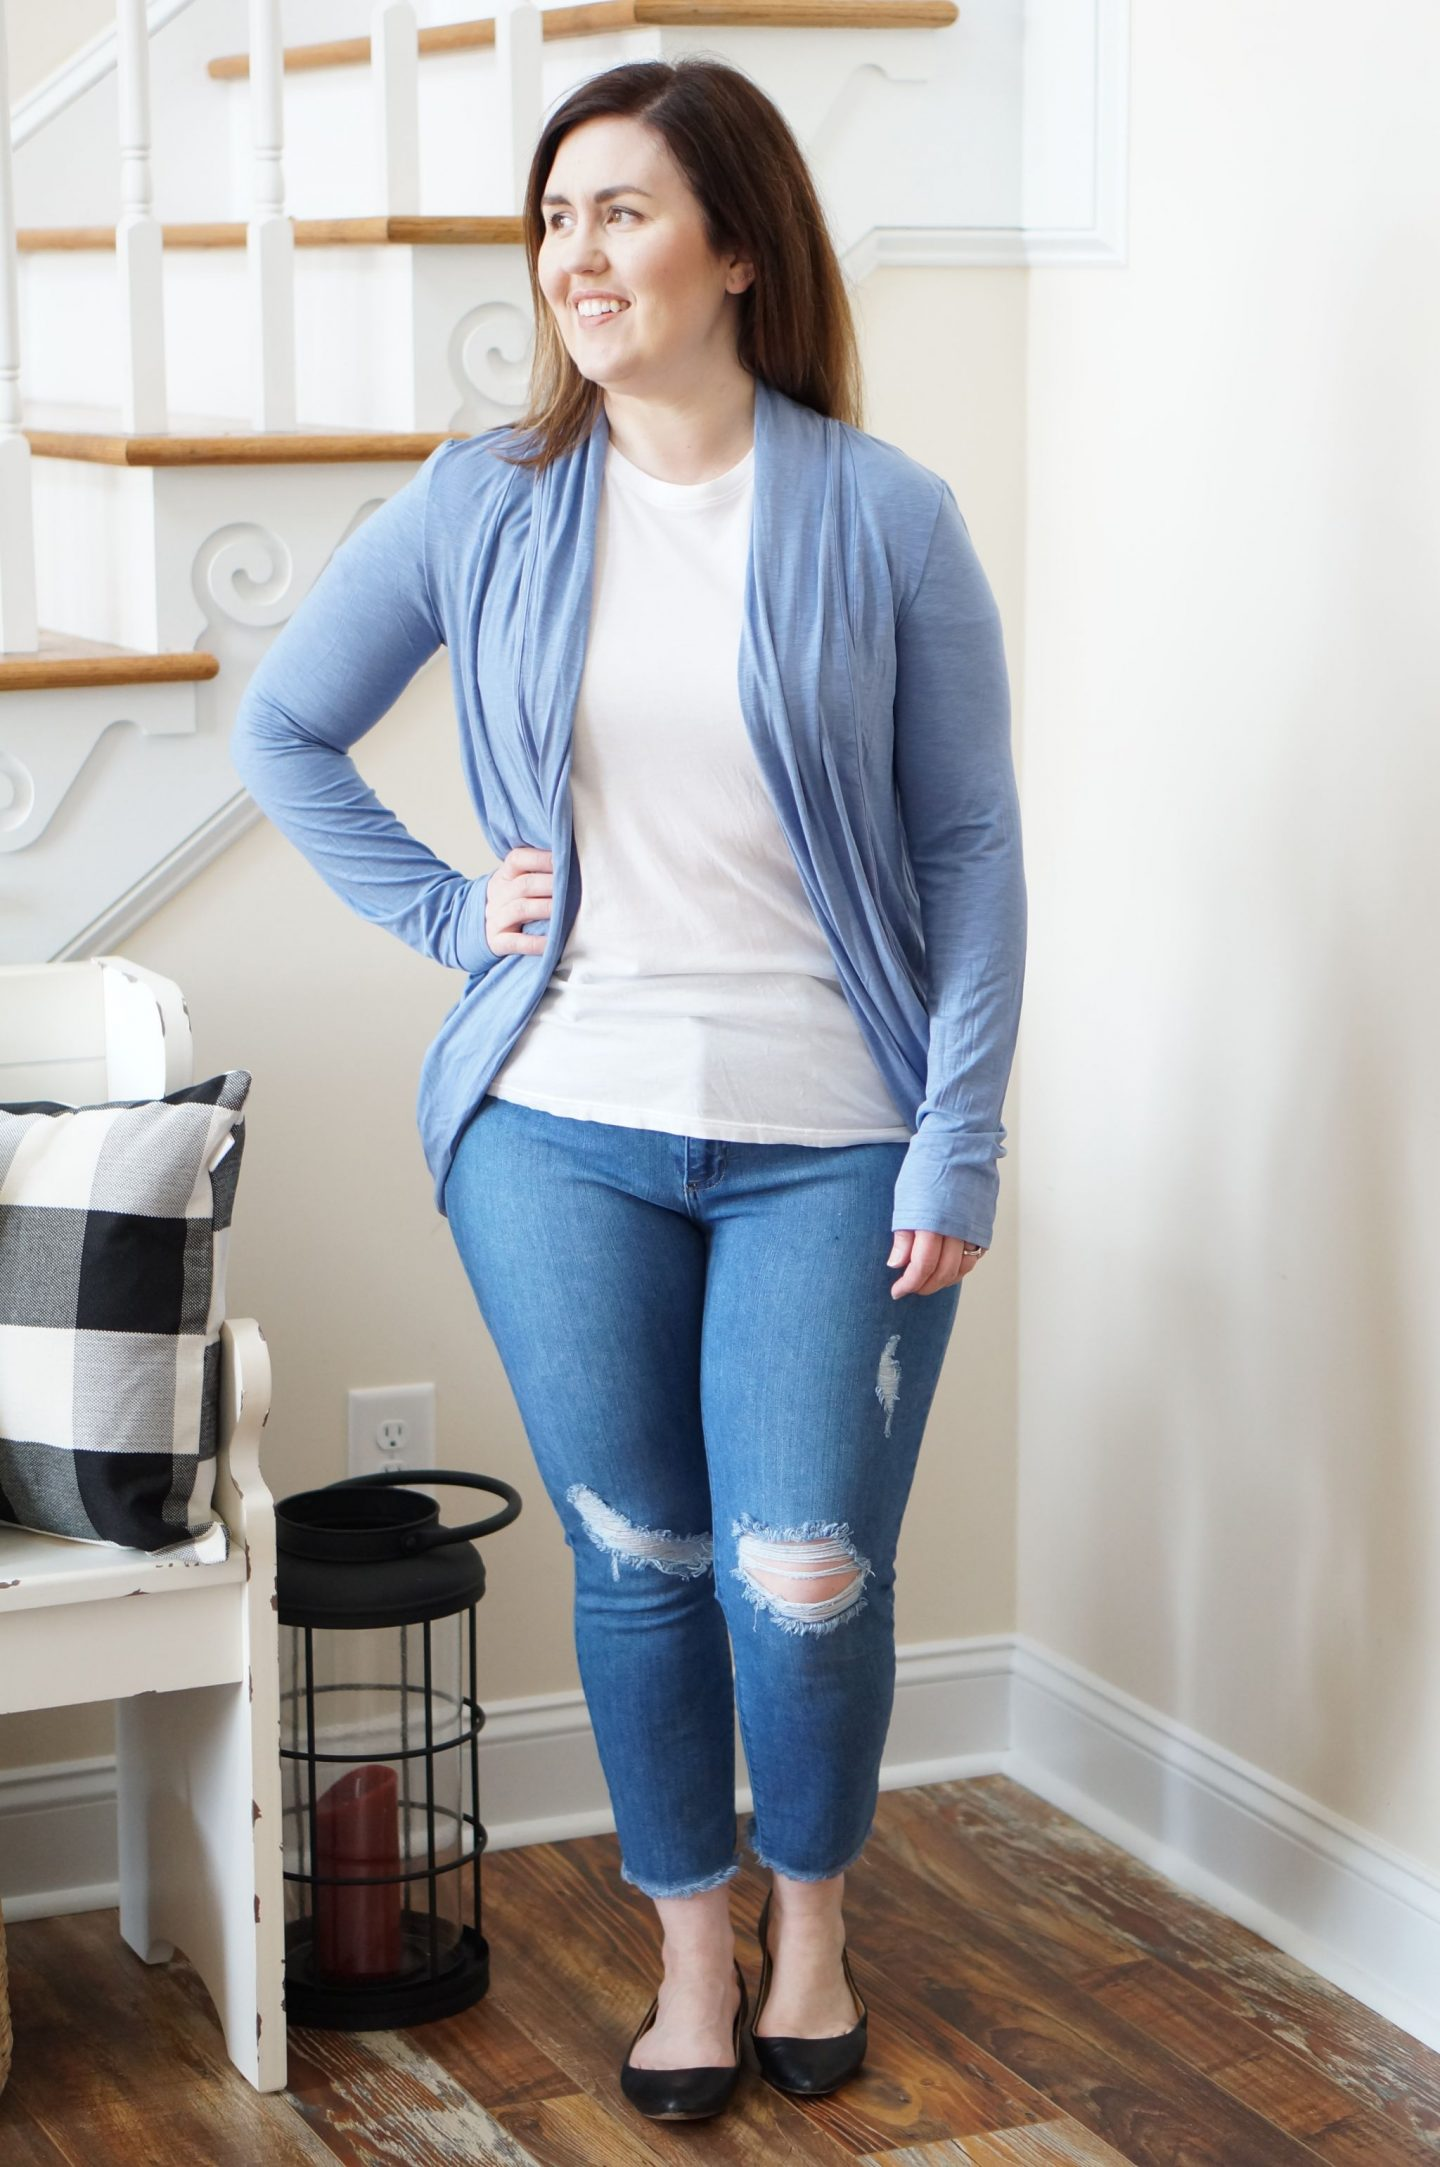 North Carolina style blogger Rebecca Lately shares her box of cardigans from Stitch Fix.  This is her 46th fix!  Come check out what she got!